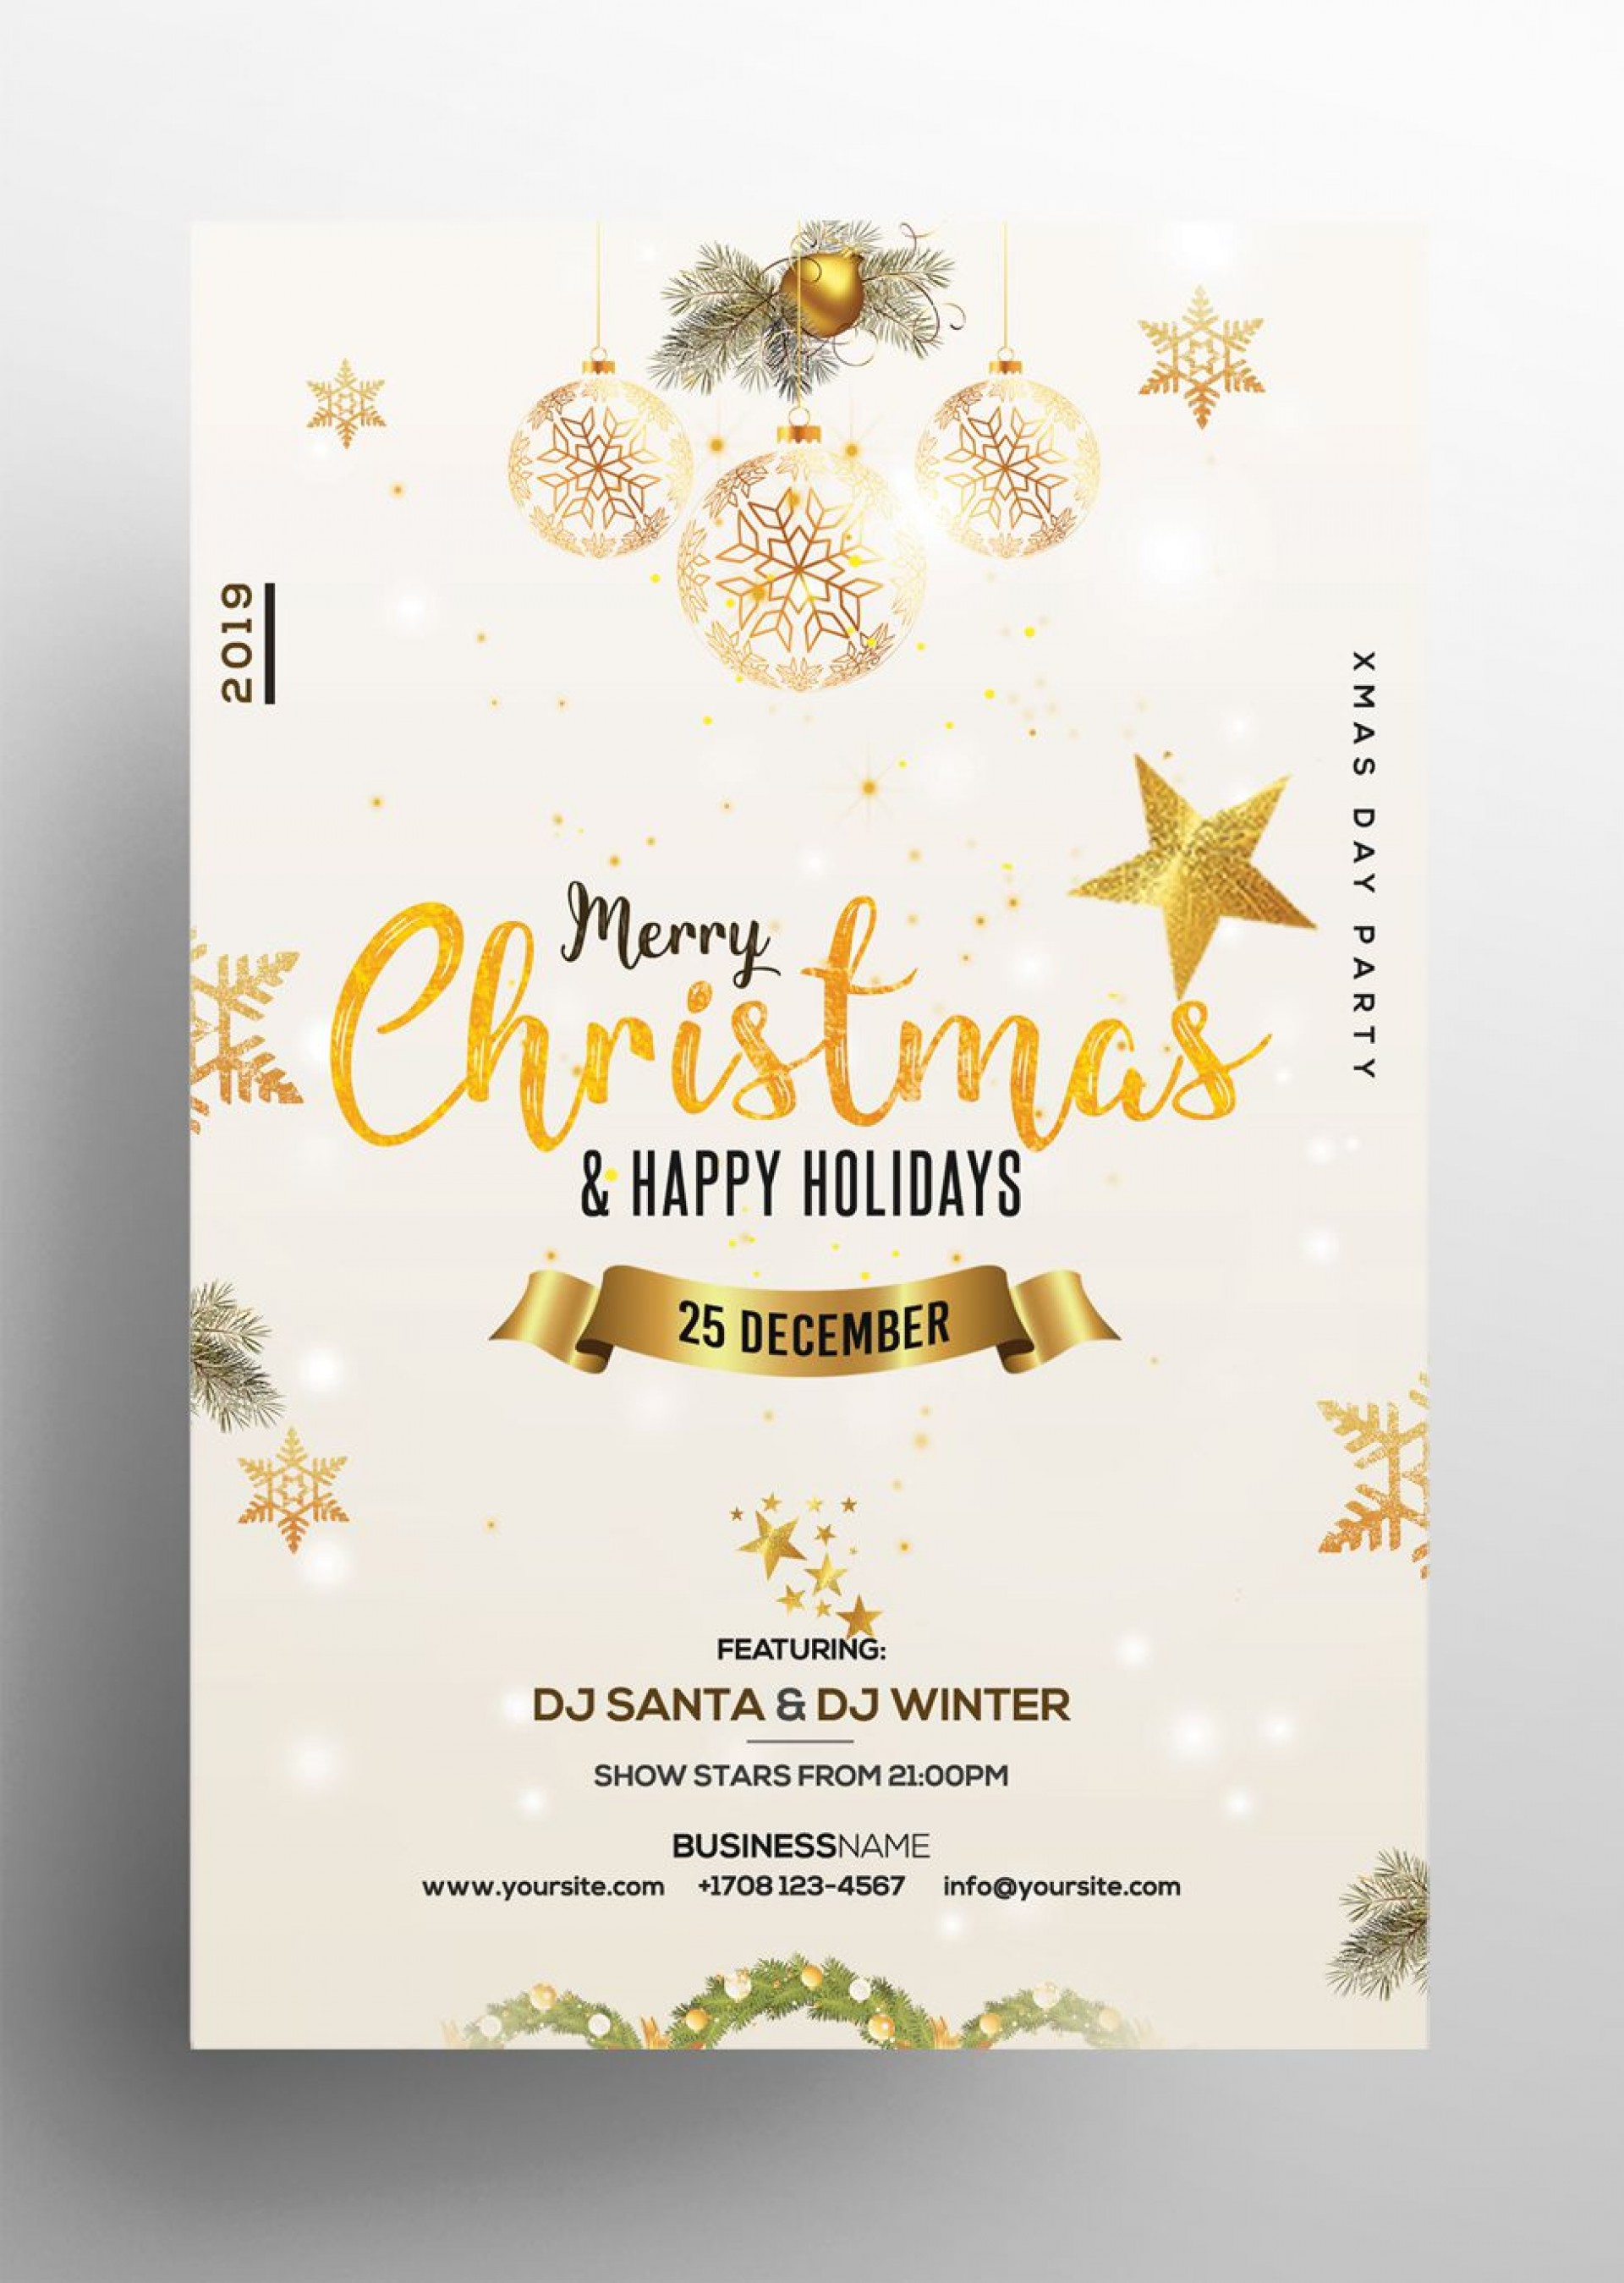 005 Excellent Free Holiday Flyer Template High Definition  Templates For Word Printable Christma1920